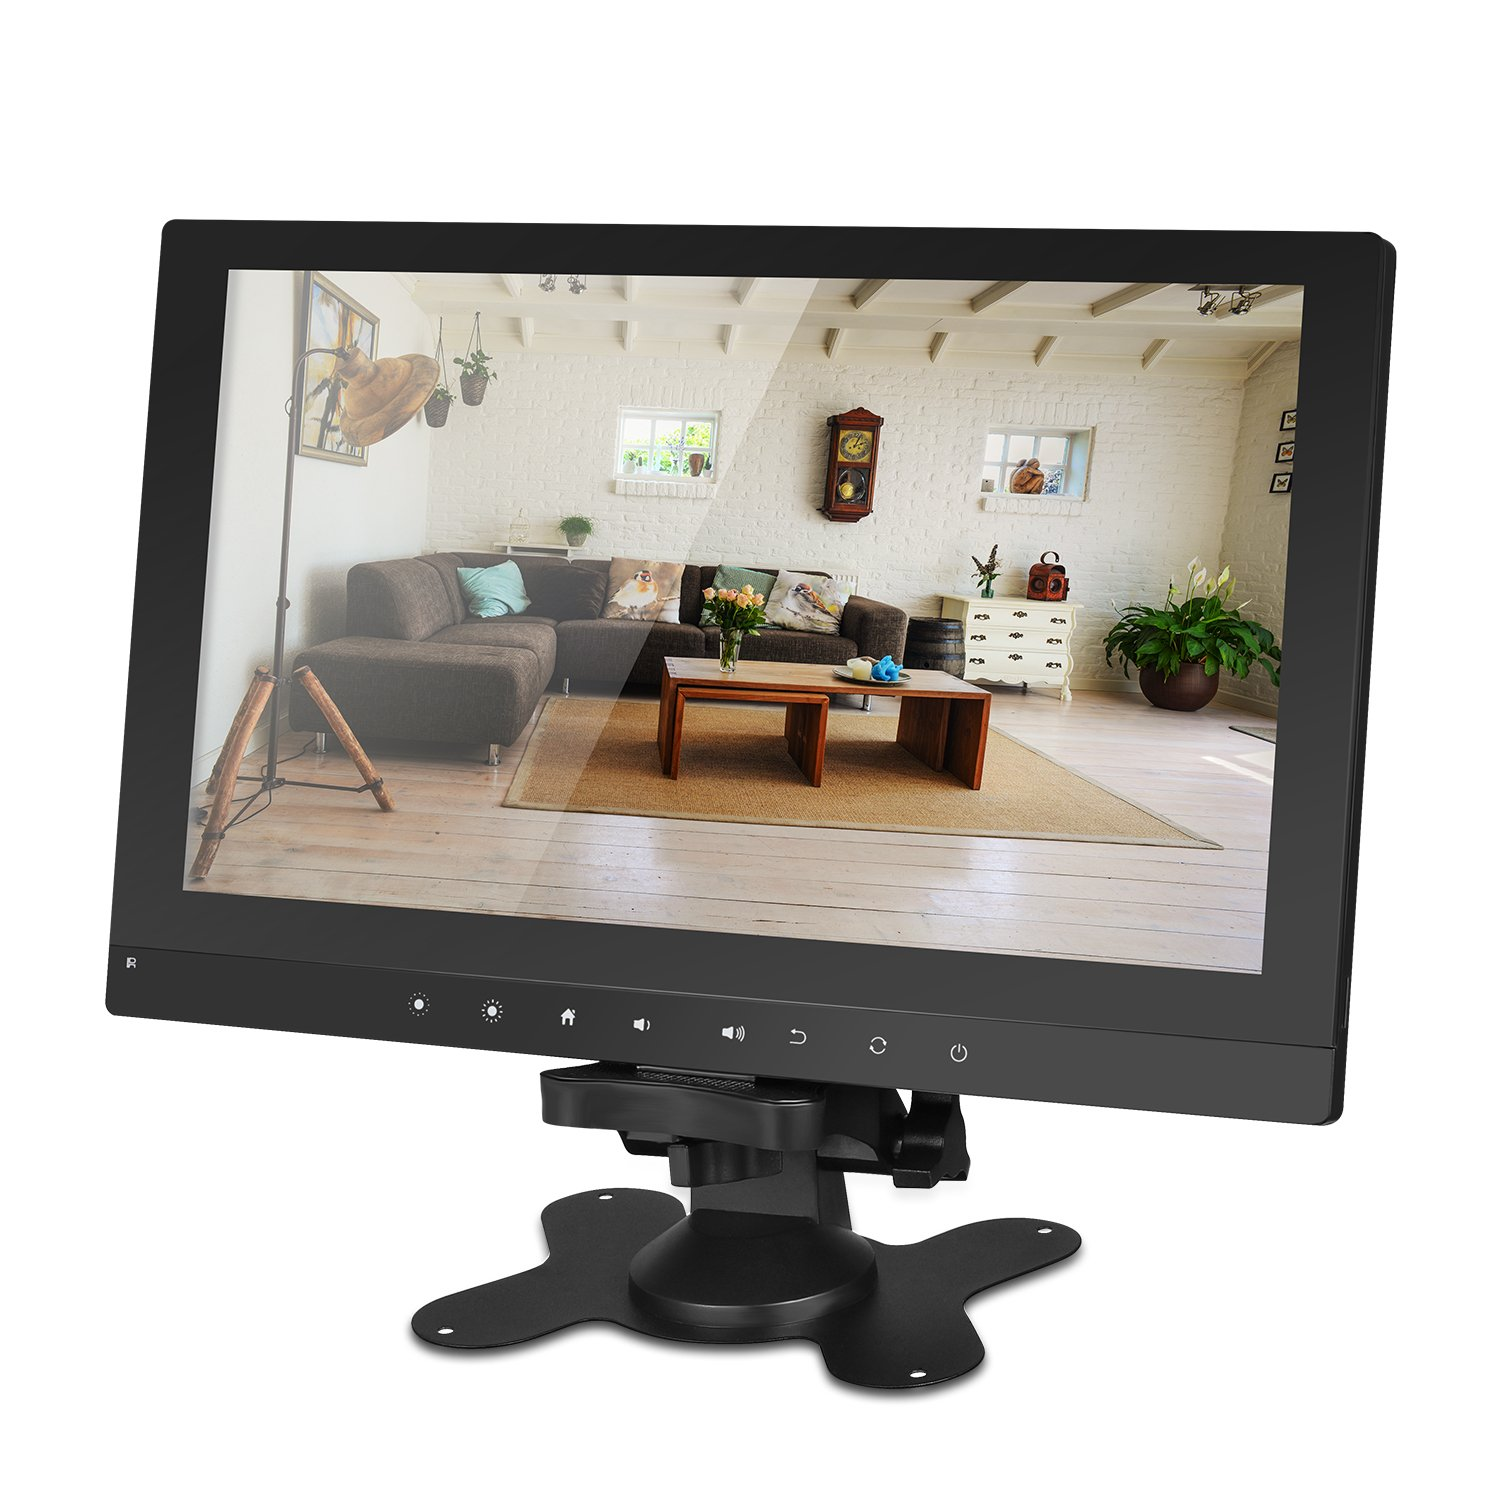 SGEF 10.1 inch TFT LCD IPS 1024x600 HD Wide Viewing Angle Color Display Screen Security Monitor CCTV Surveillance Monitor Video Monitor with Speaker & AV/VGA/HDMI/BNC (black)